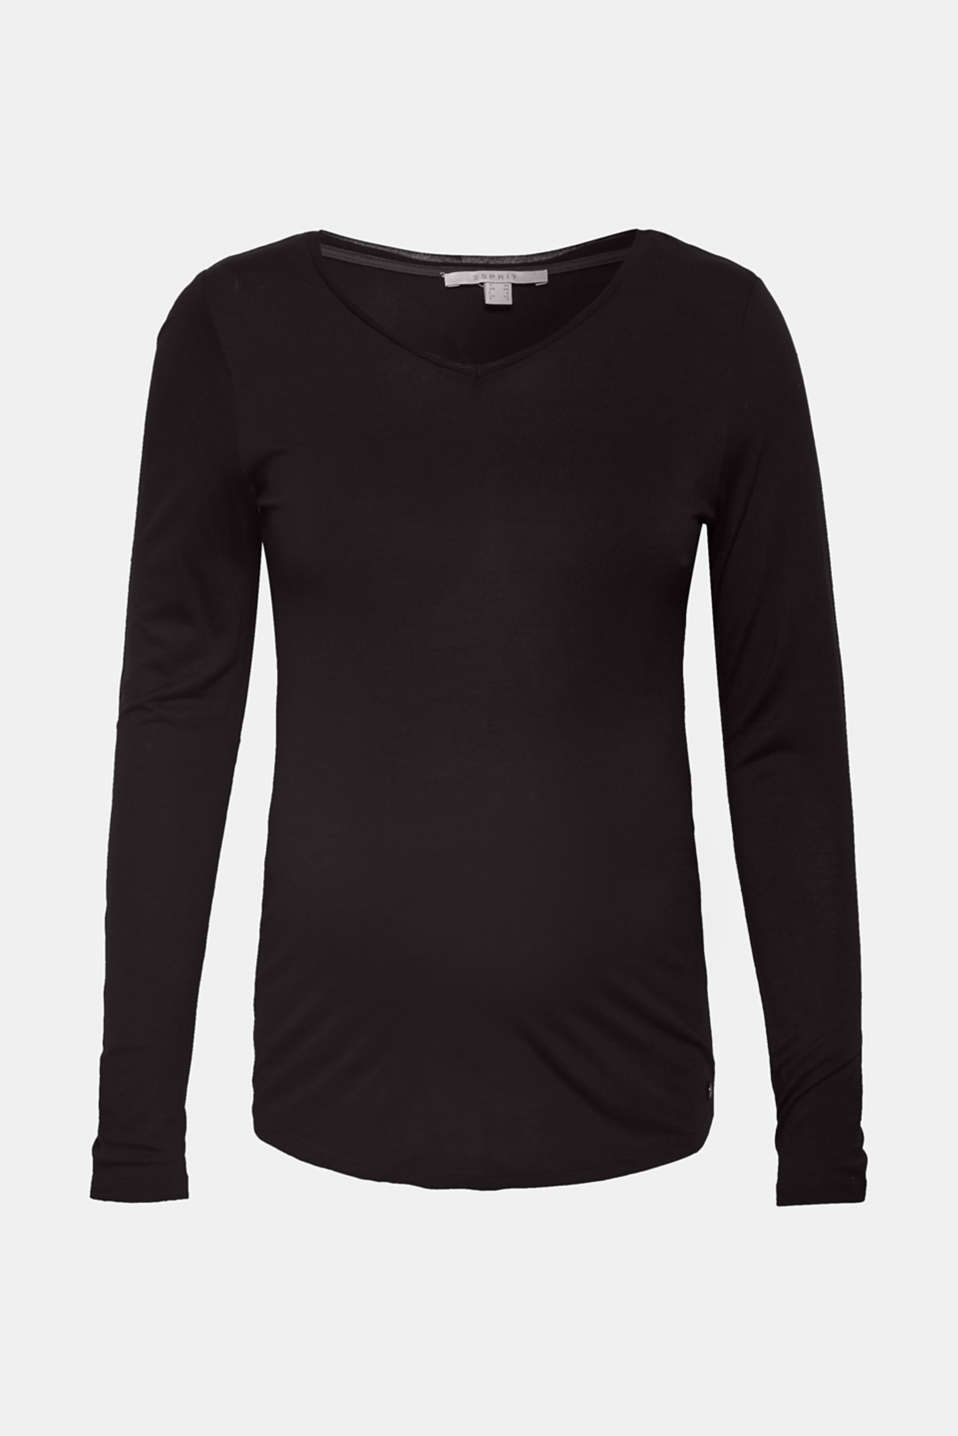 Esprit - Long sleeve top with a V-neckline